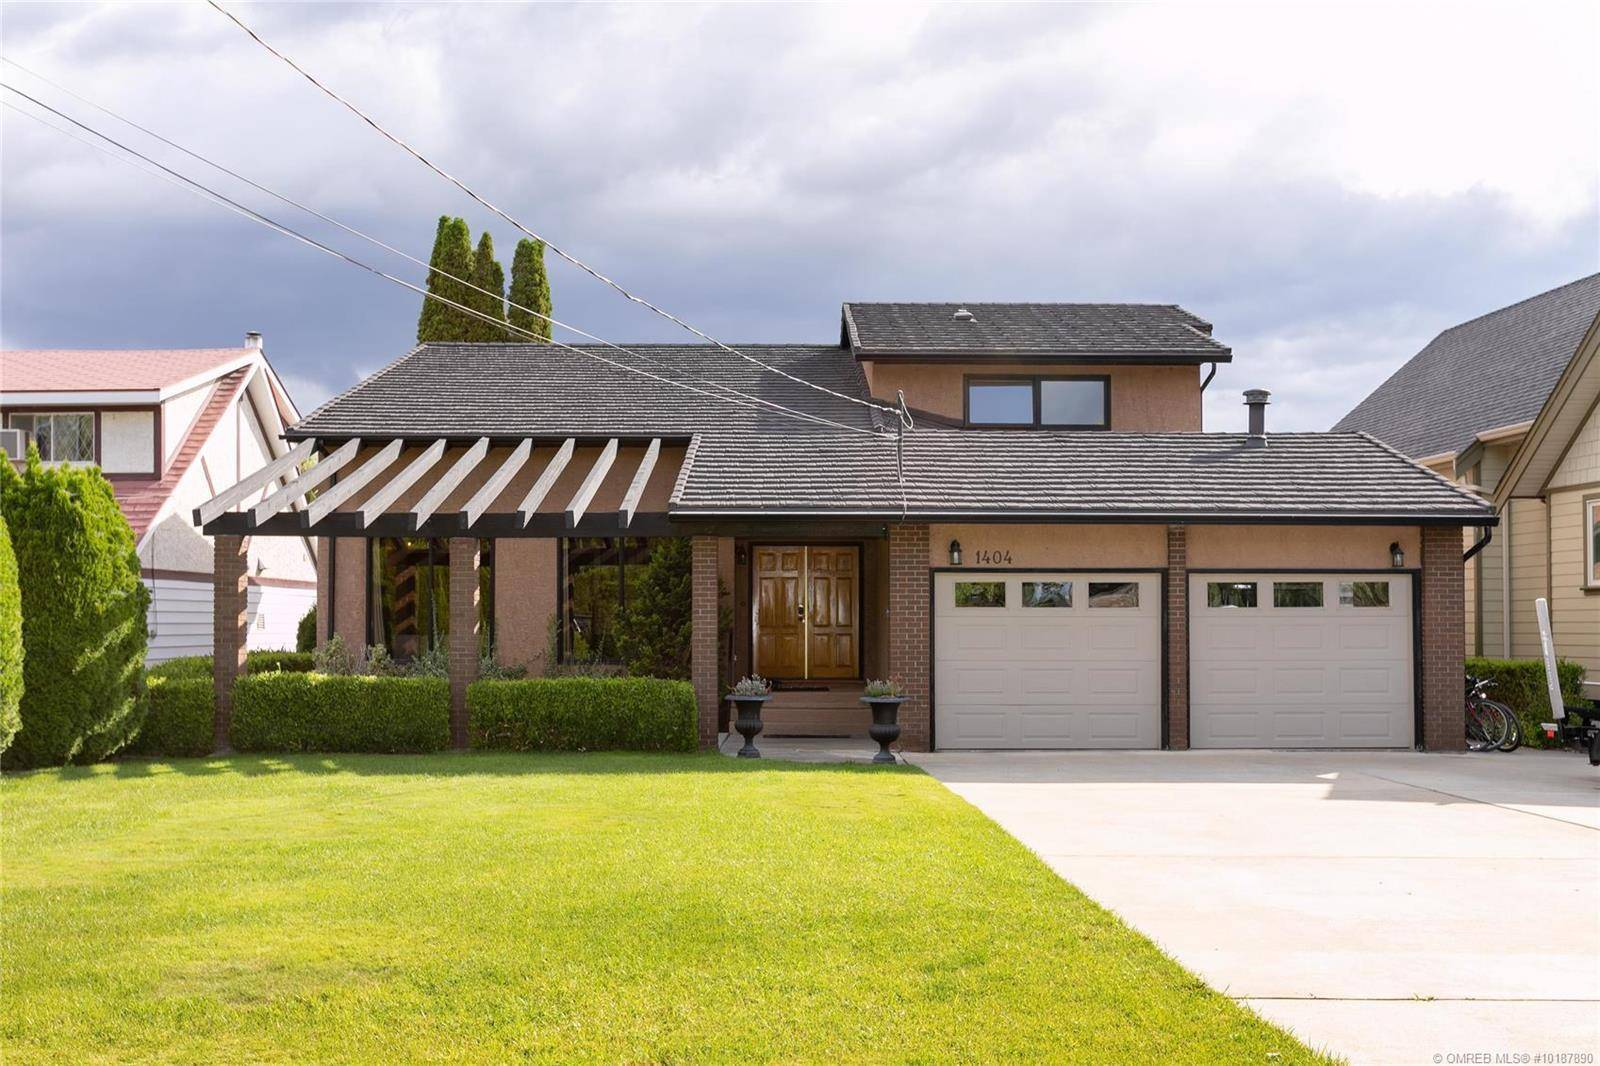 House for sale at 1404 Green Bay Rd West Kelowna British Columbia - MLS: 10187890